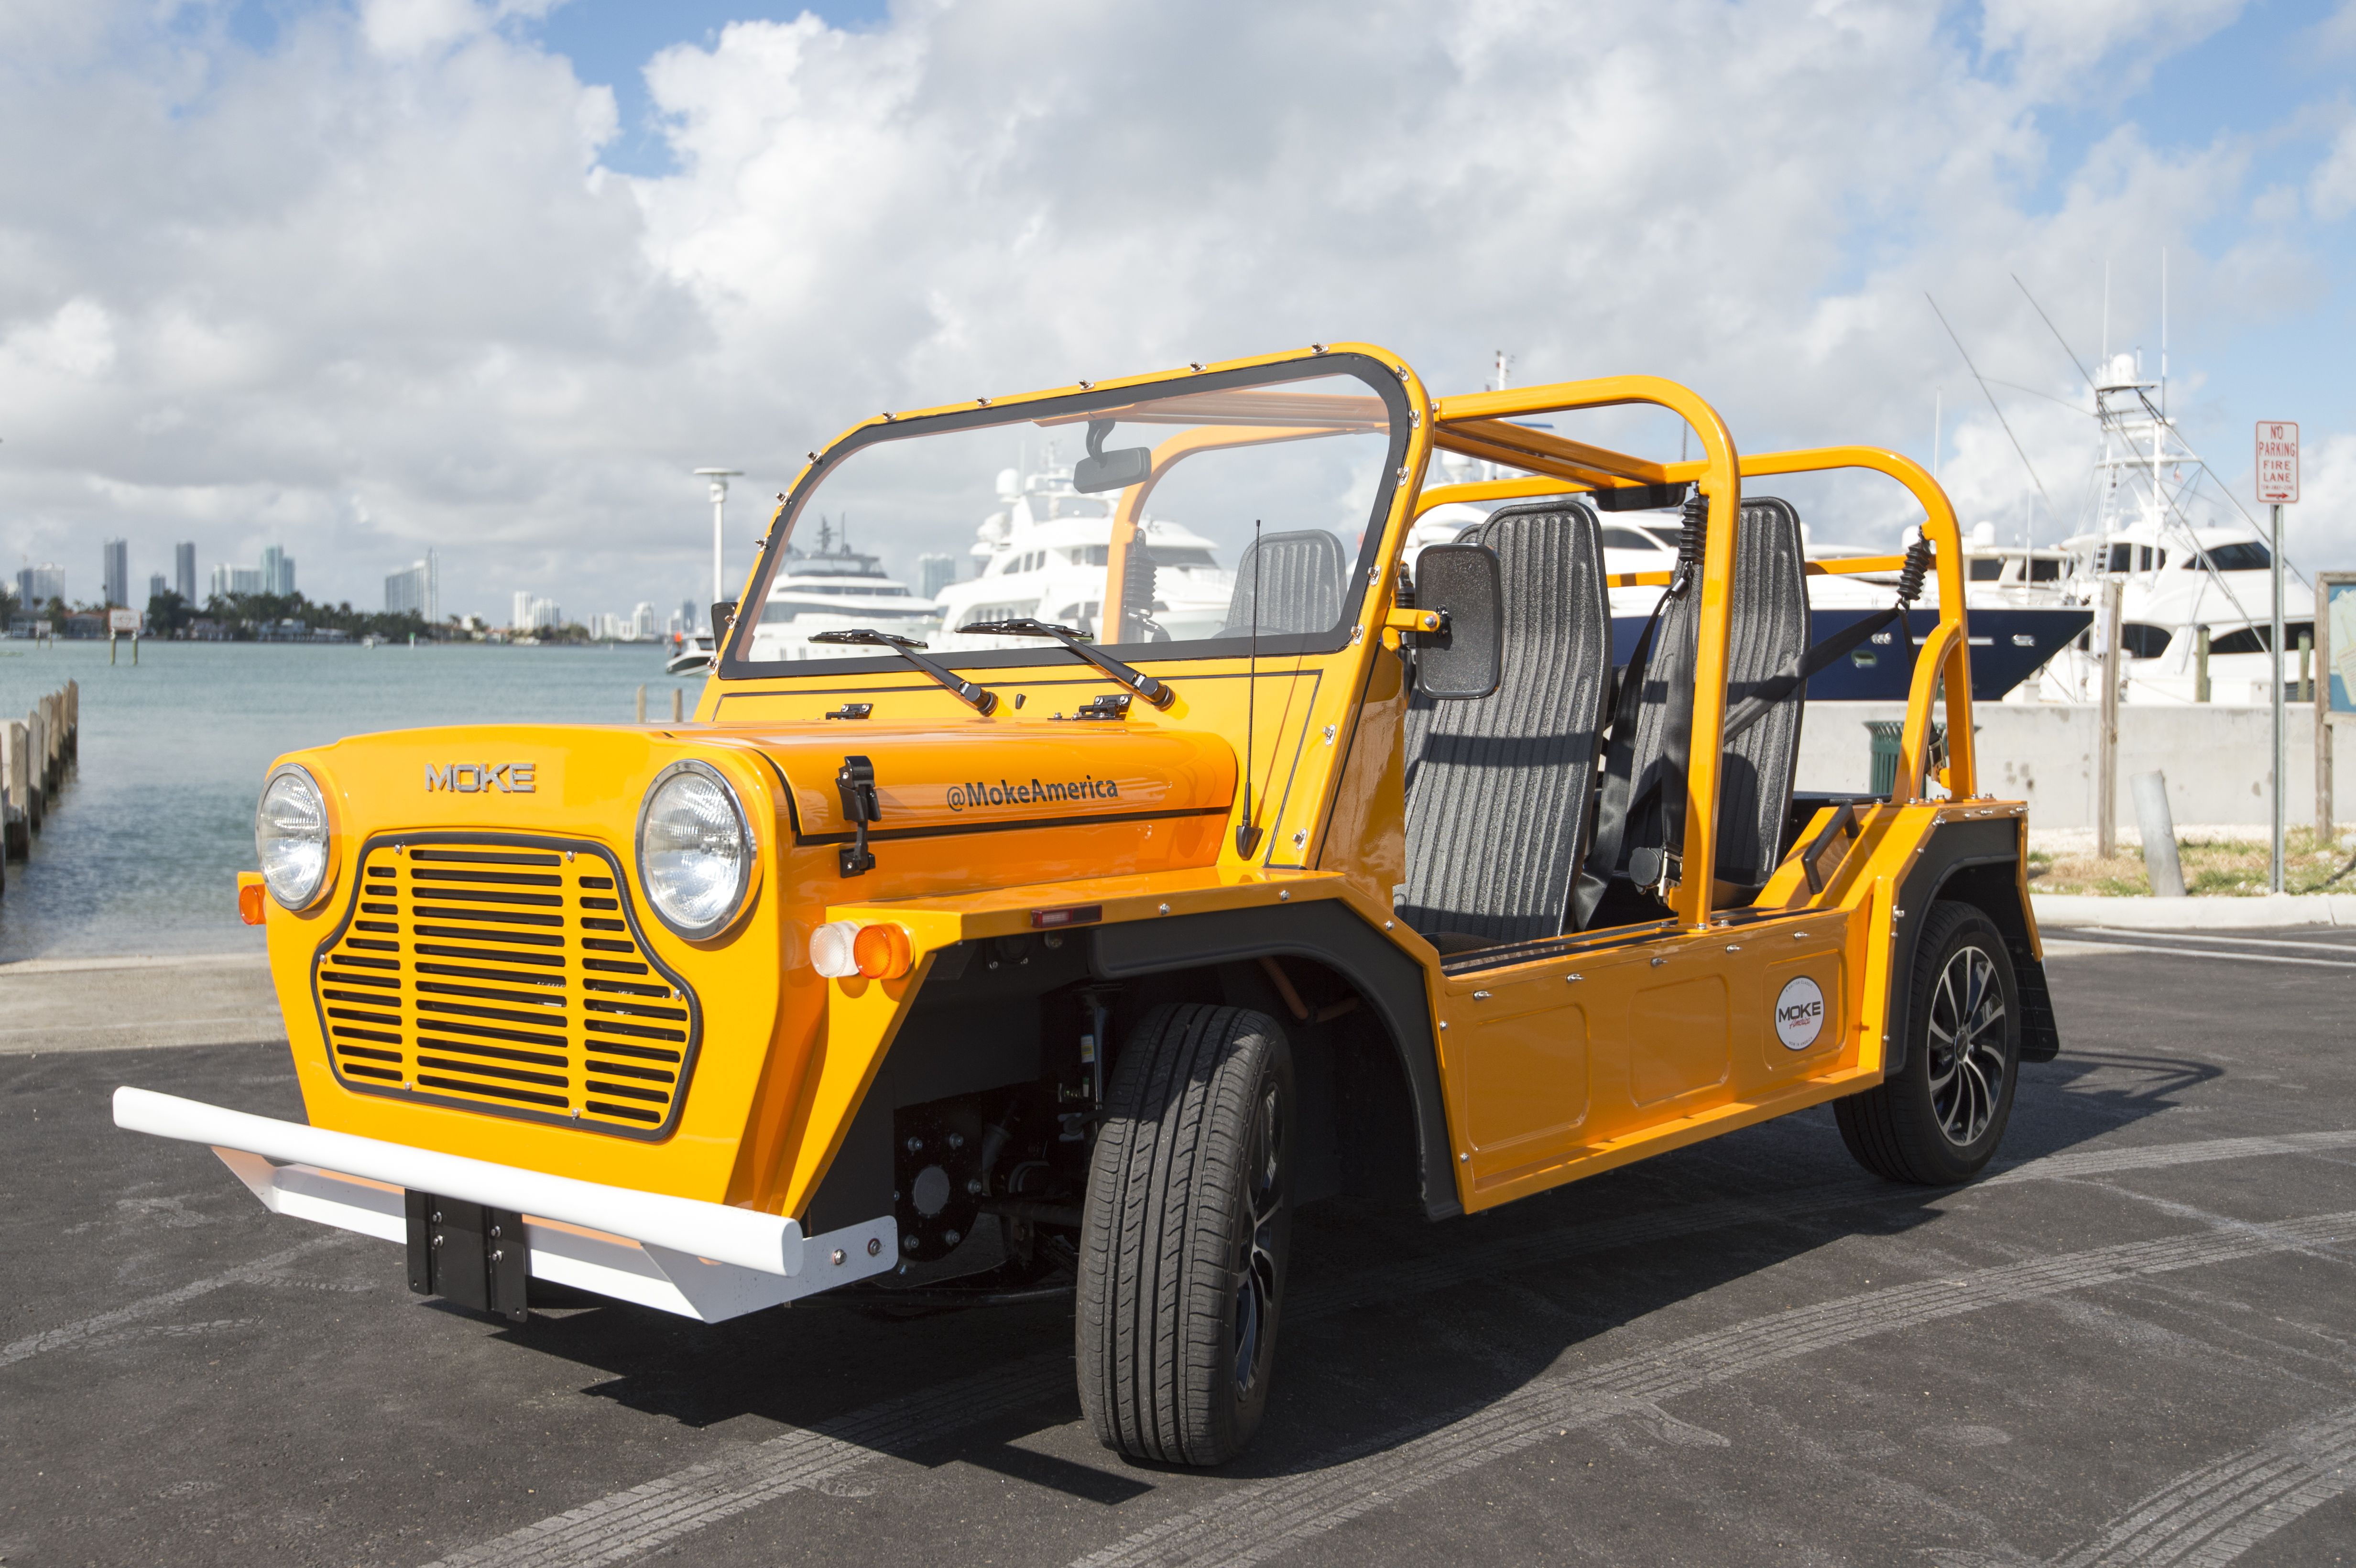 medium resolution of introducing moke america a 20th century collectible car reinvented with 21st century green friendly electric power available exclusively in